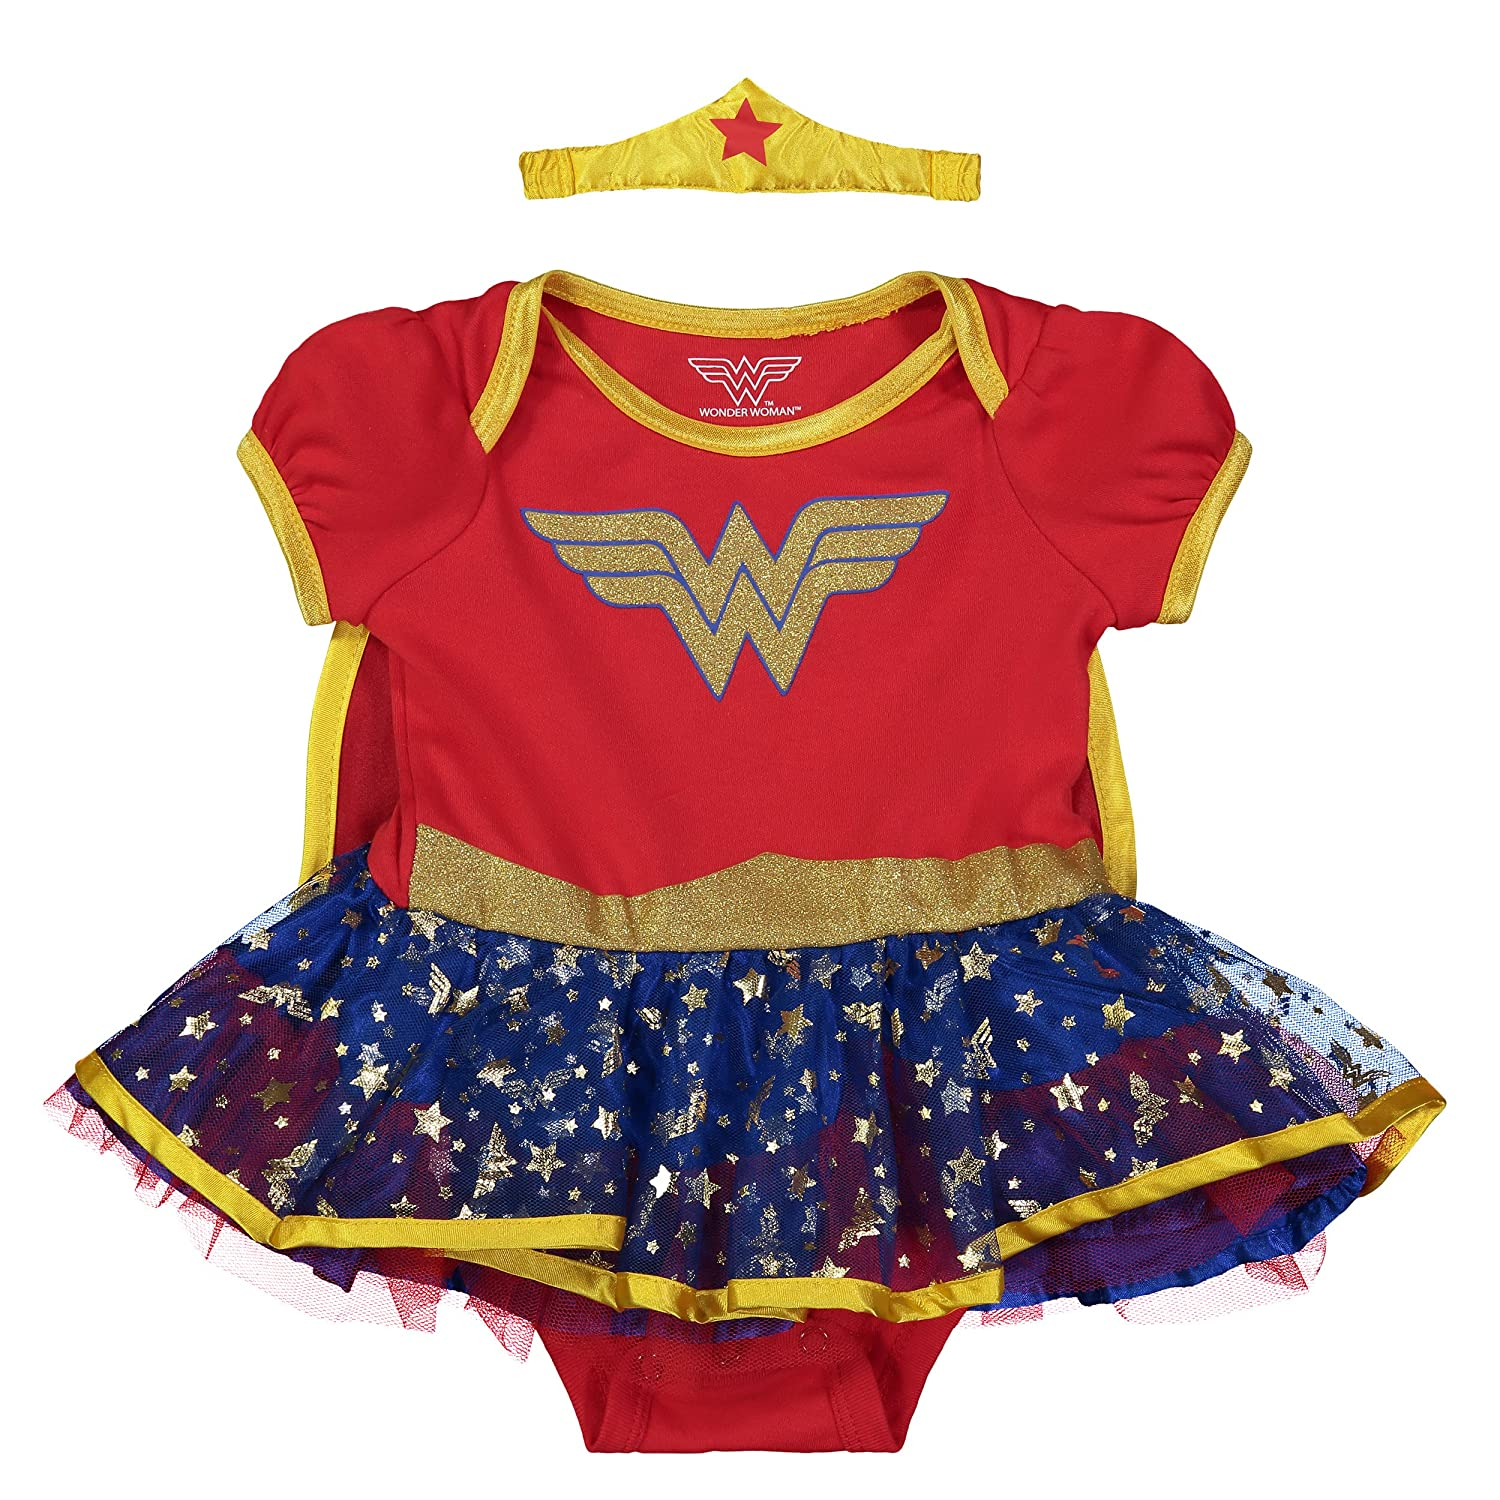 ab94490d1 Dazzling gold glitter print Wonder Woman design with the WW logo and  utility belt 3 snap closure and lap shoulders for easy dressing